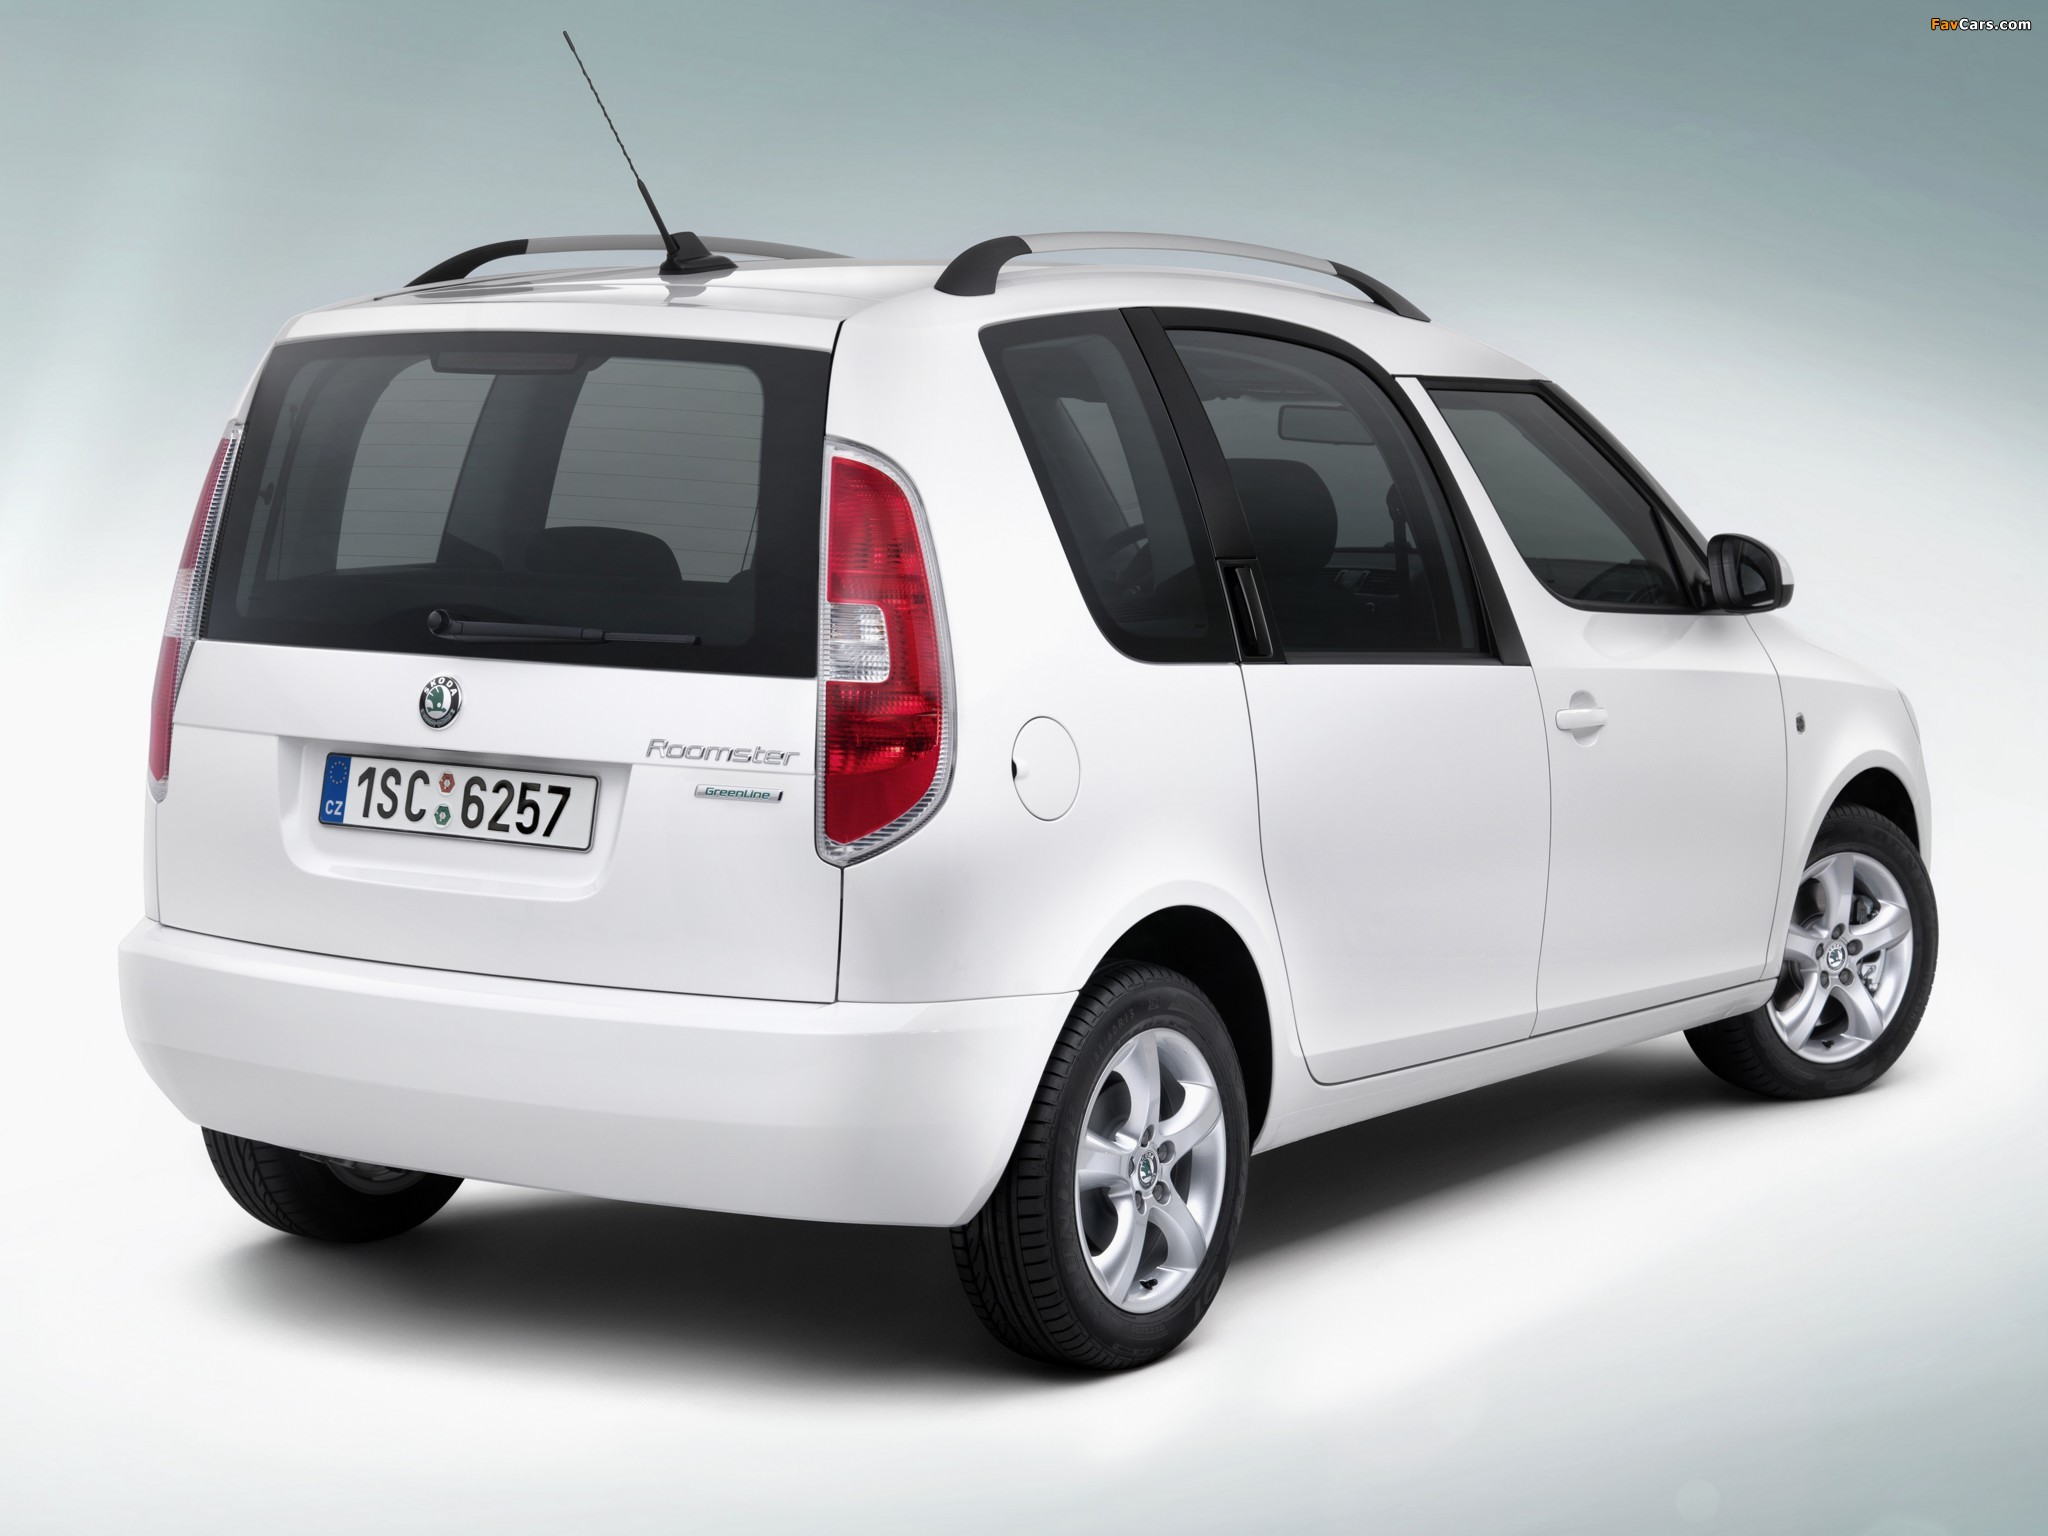 2010 skoda roomster pictures information and specs auto. Black Bedroom Furniture Sets. Home Design Ideas